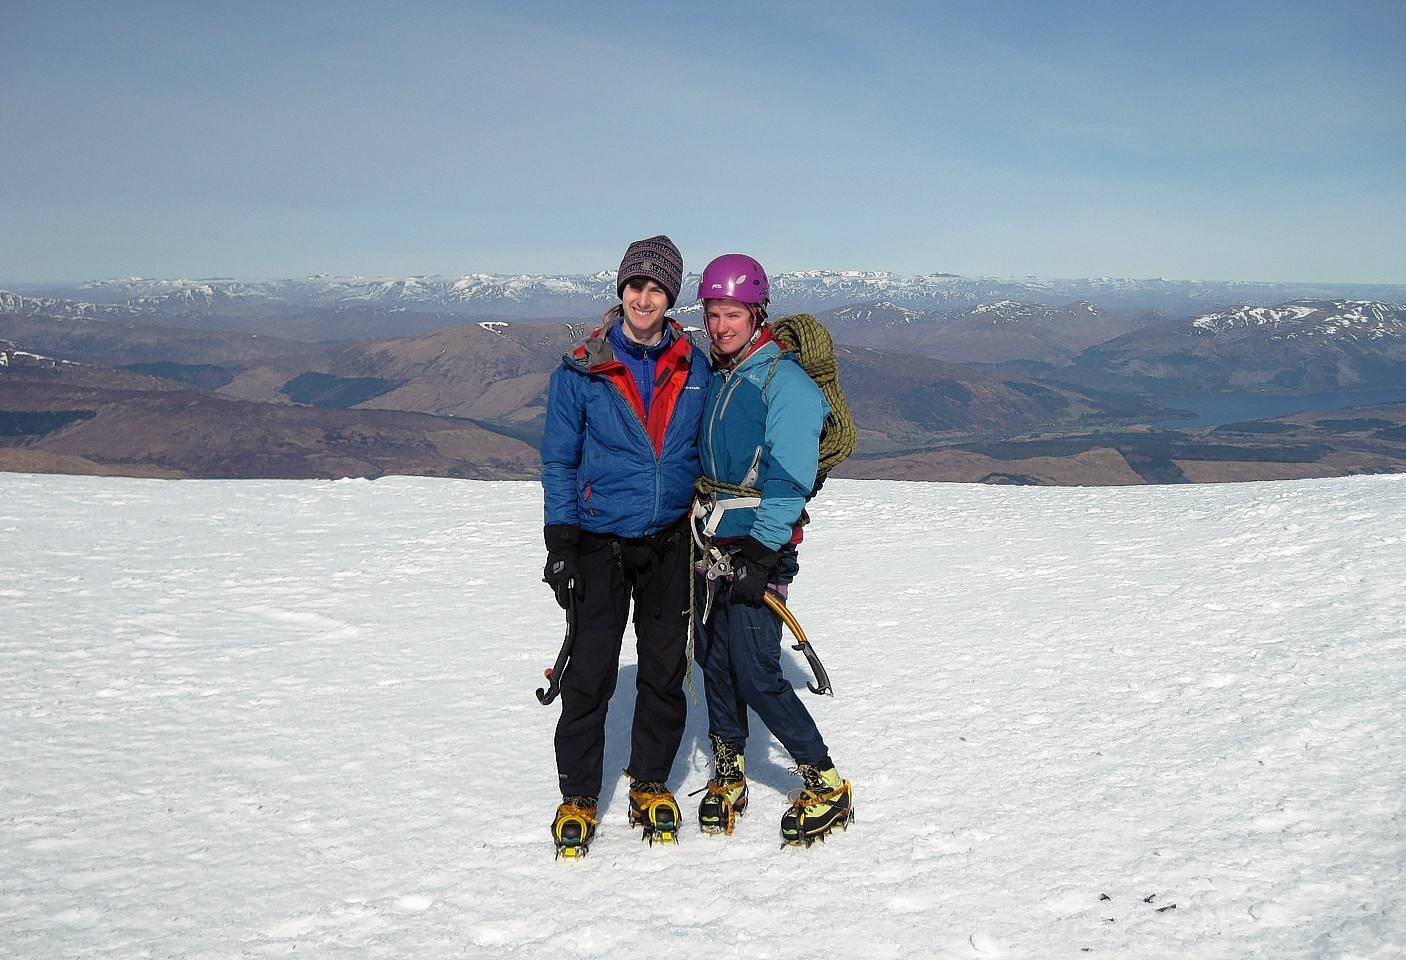 Young climbers Tim Newton and Rachel Slater went missing on Ben Nevis in February